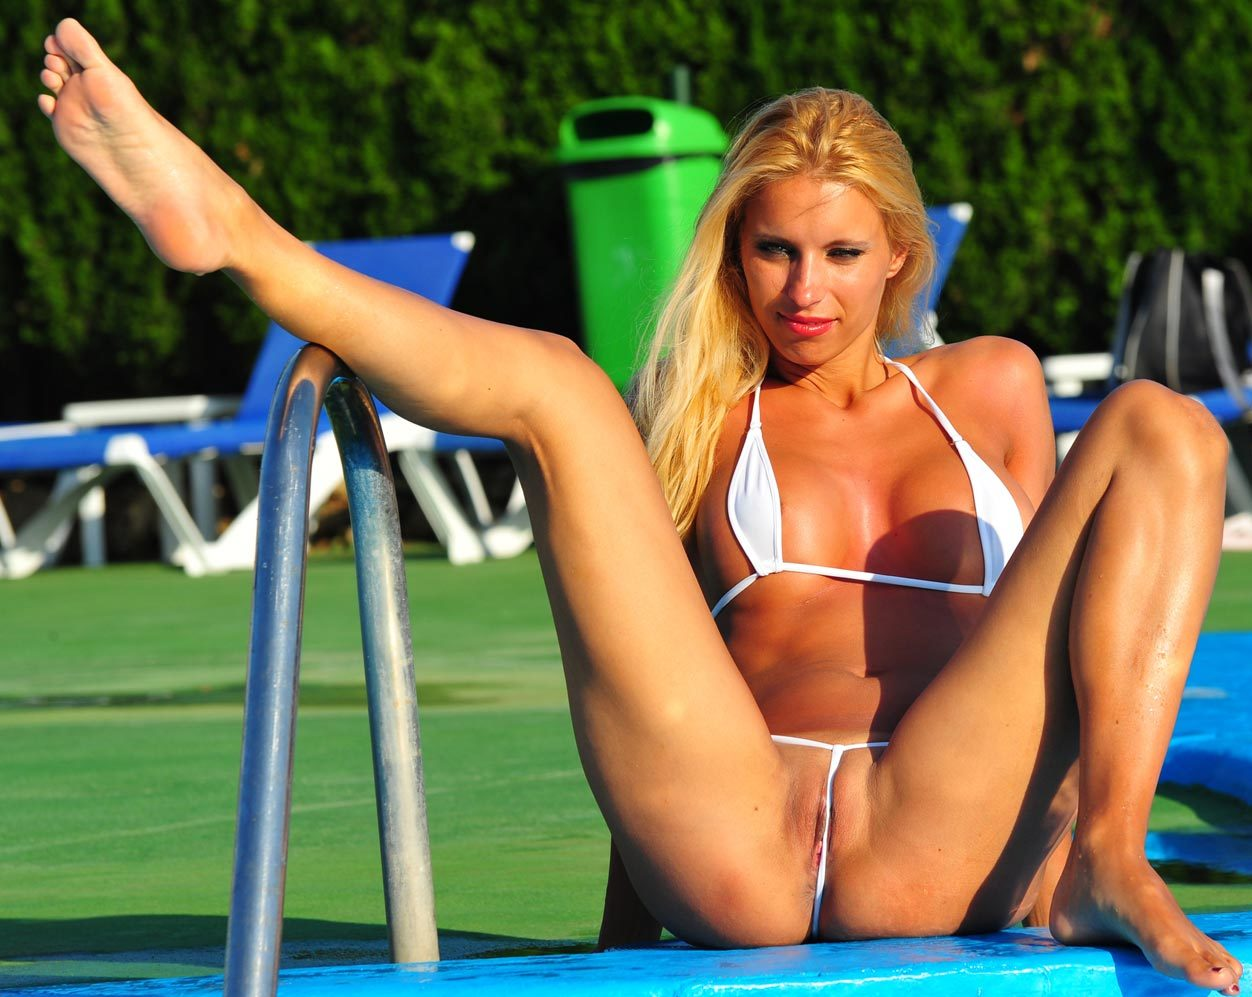 girl spread eagle at the pool with pussy floss.